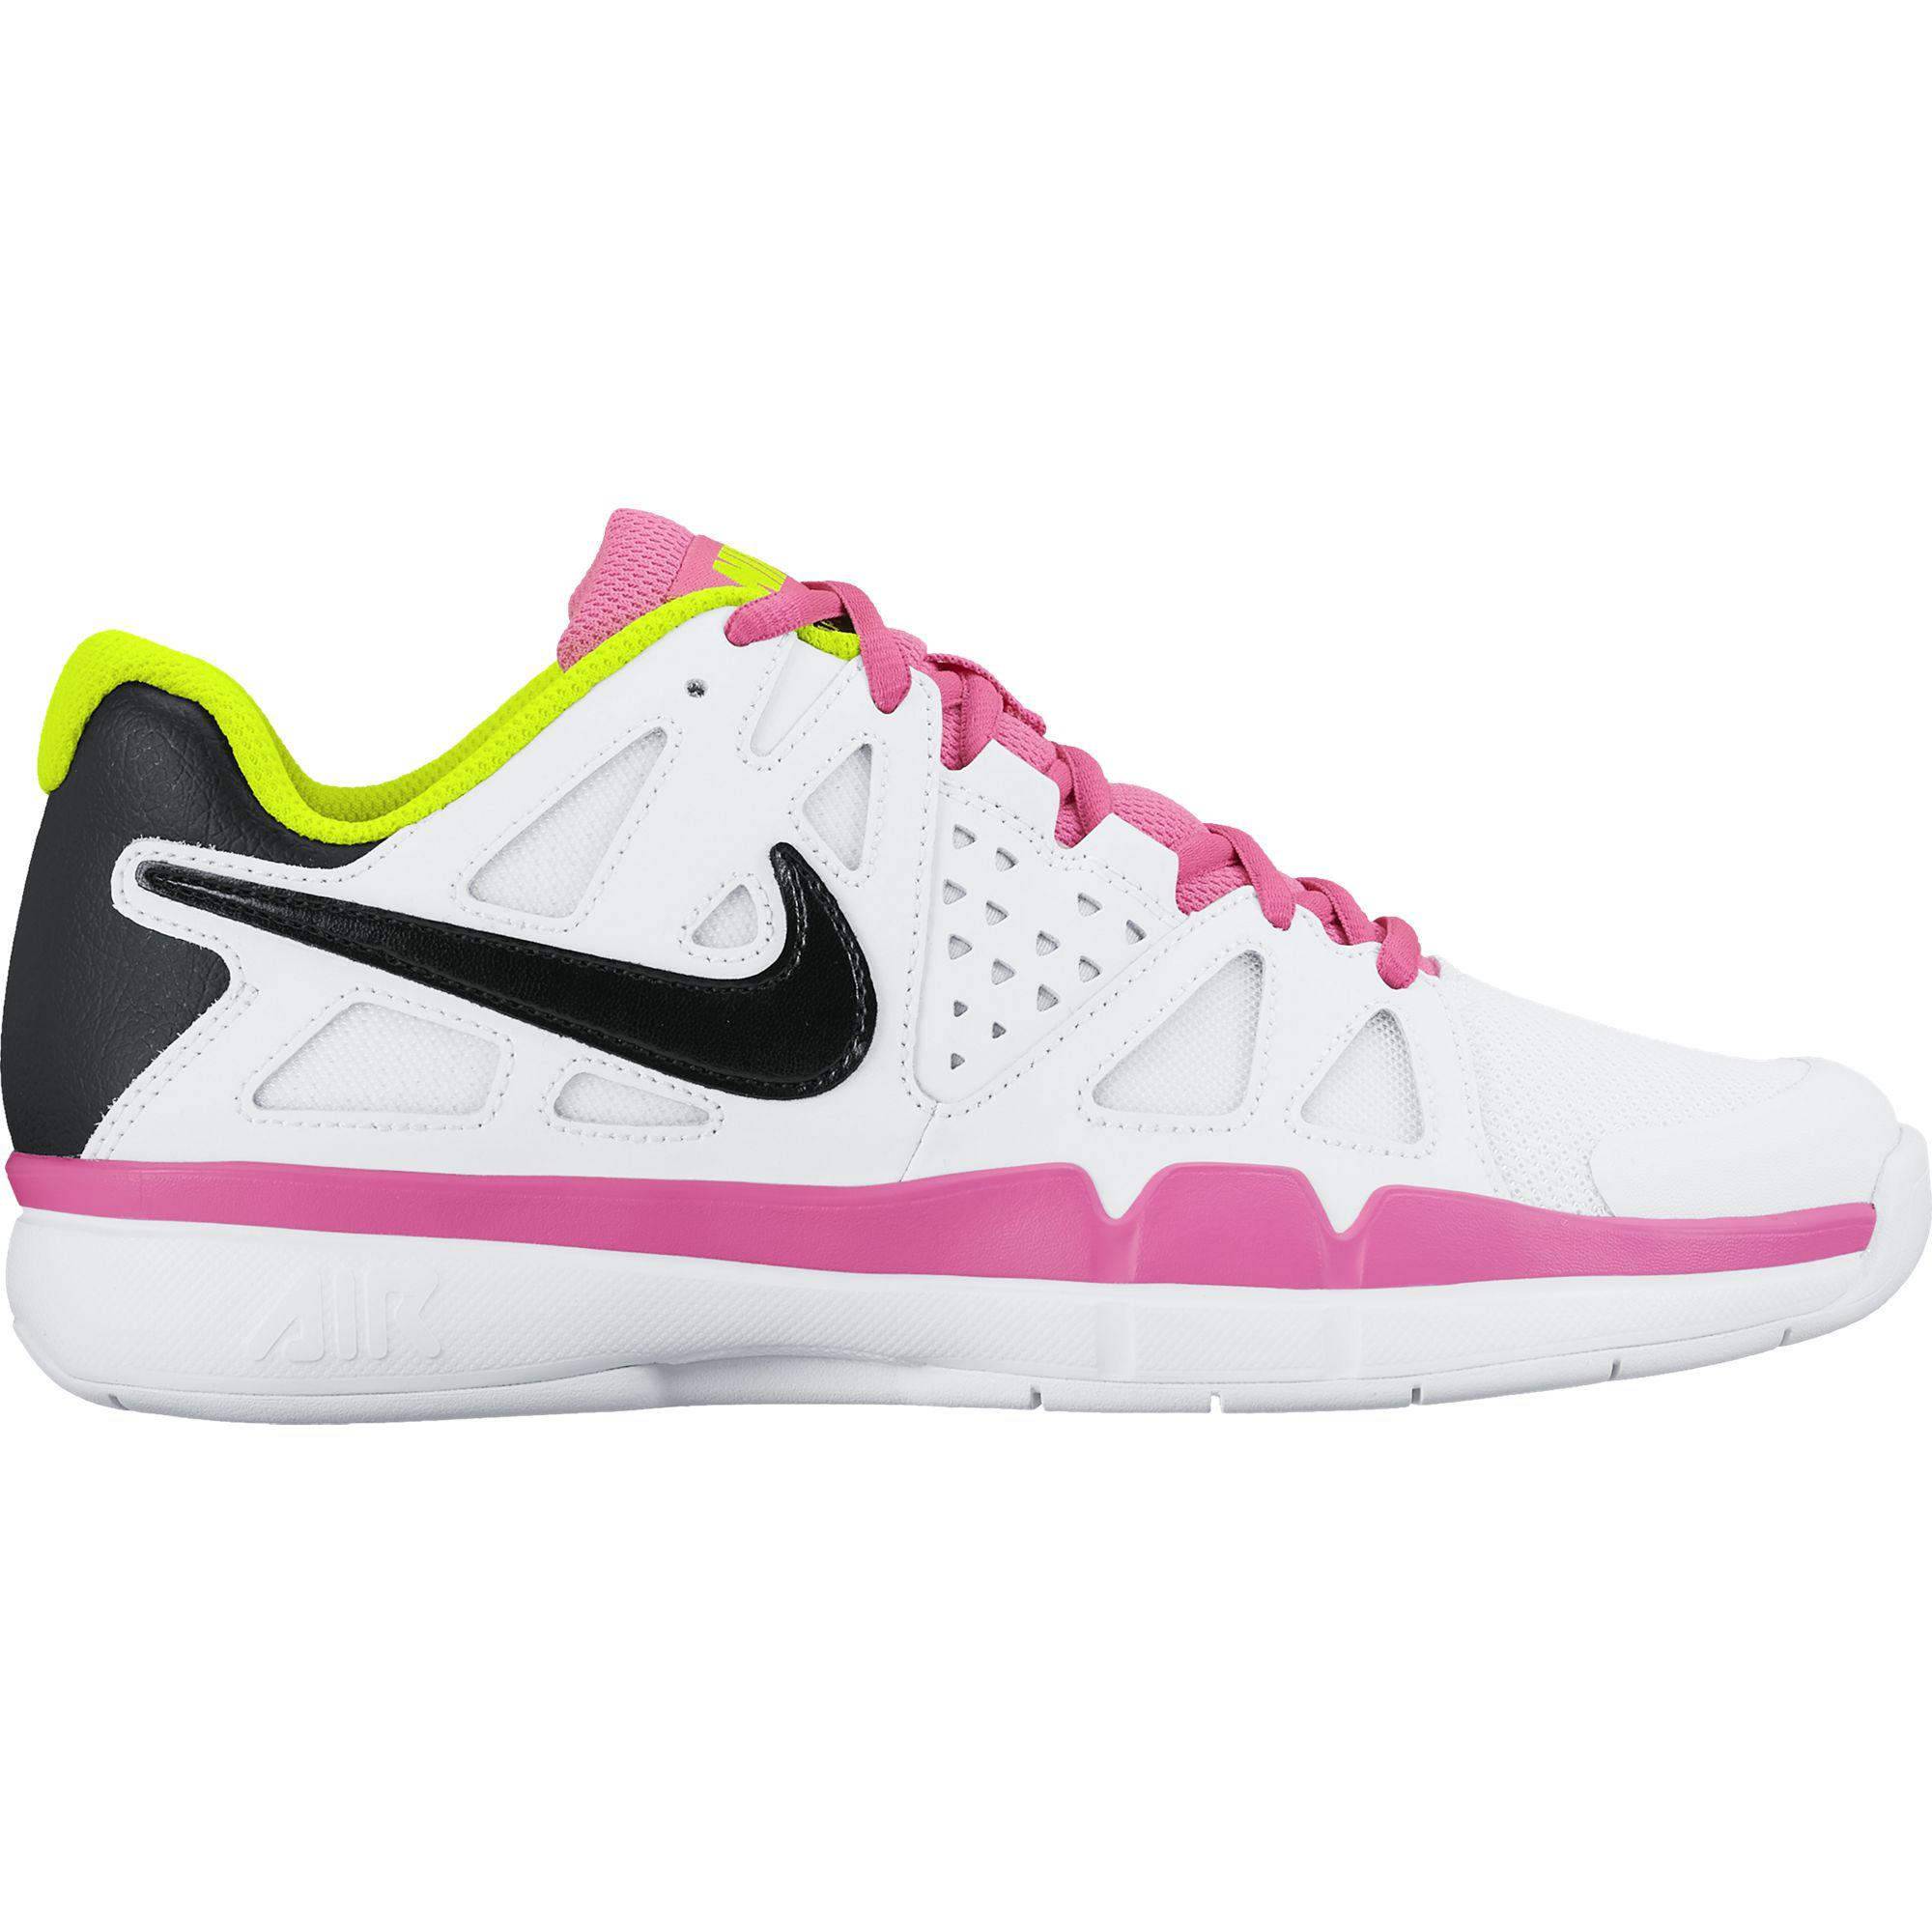 Nike badminton shoes for women